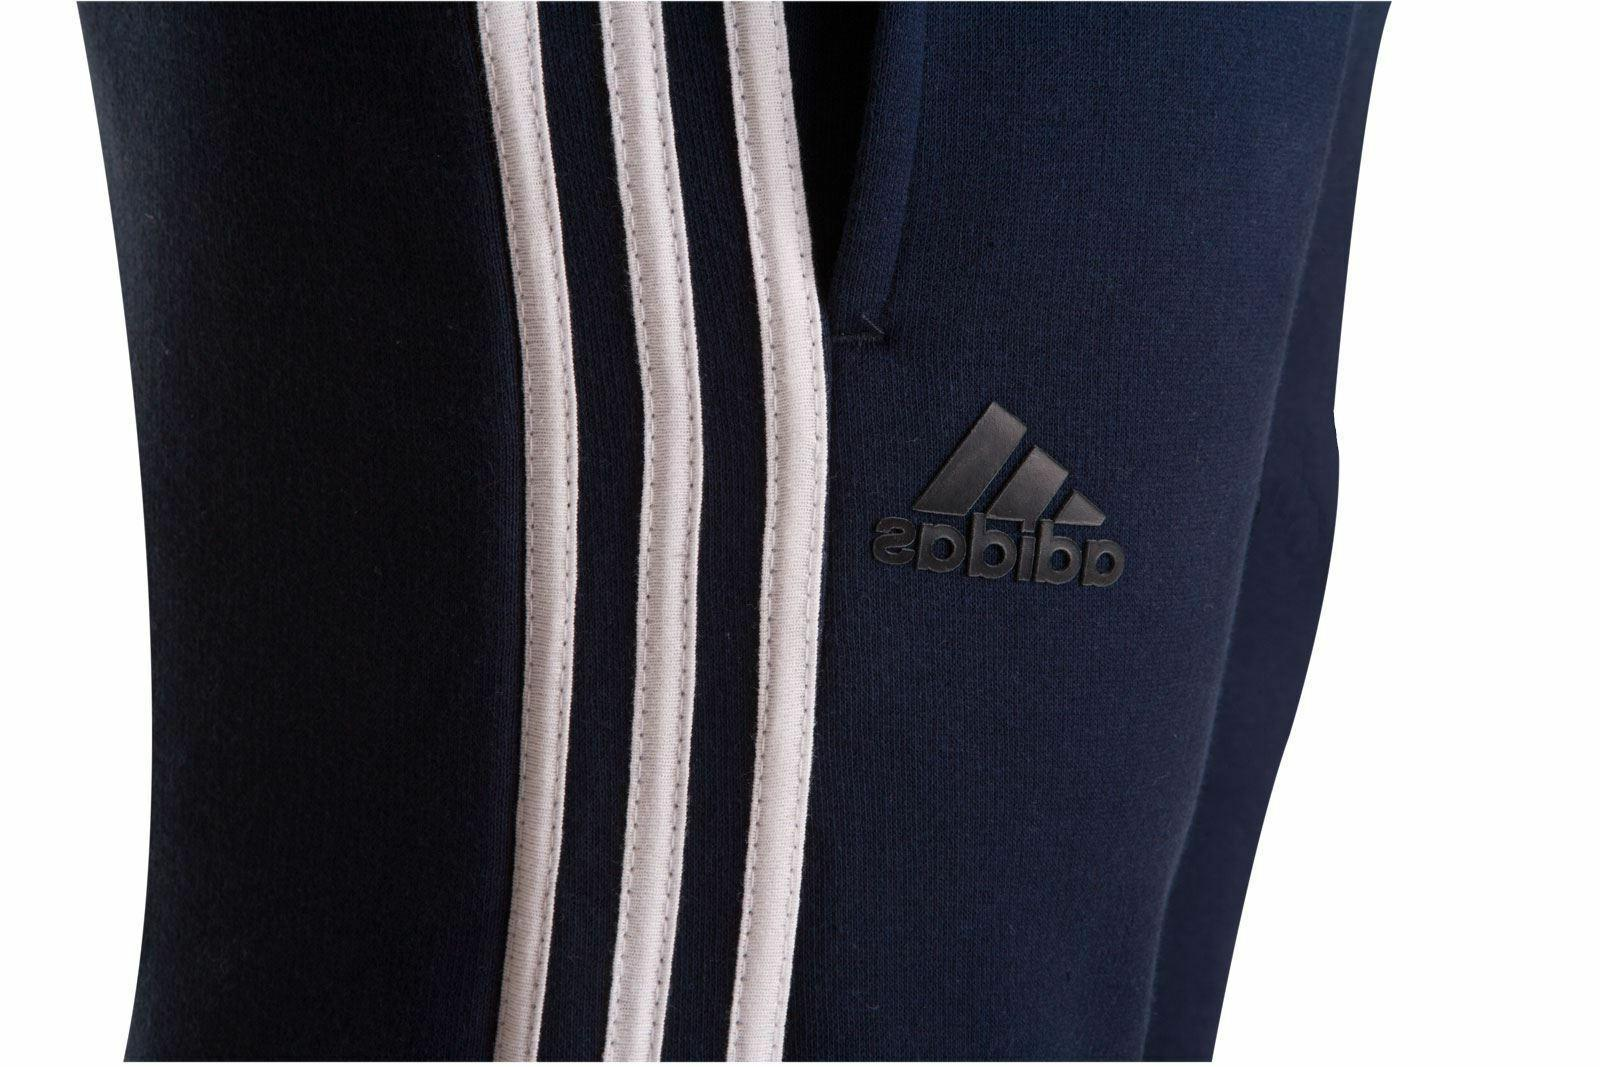 New Men's Adidas Athletic Gym Muscle Pants SMU Linear Stripe